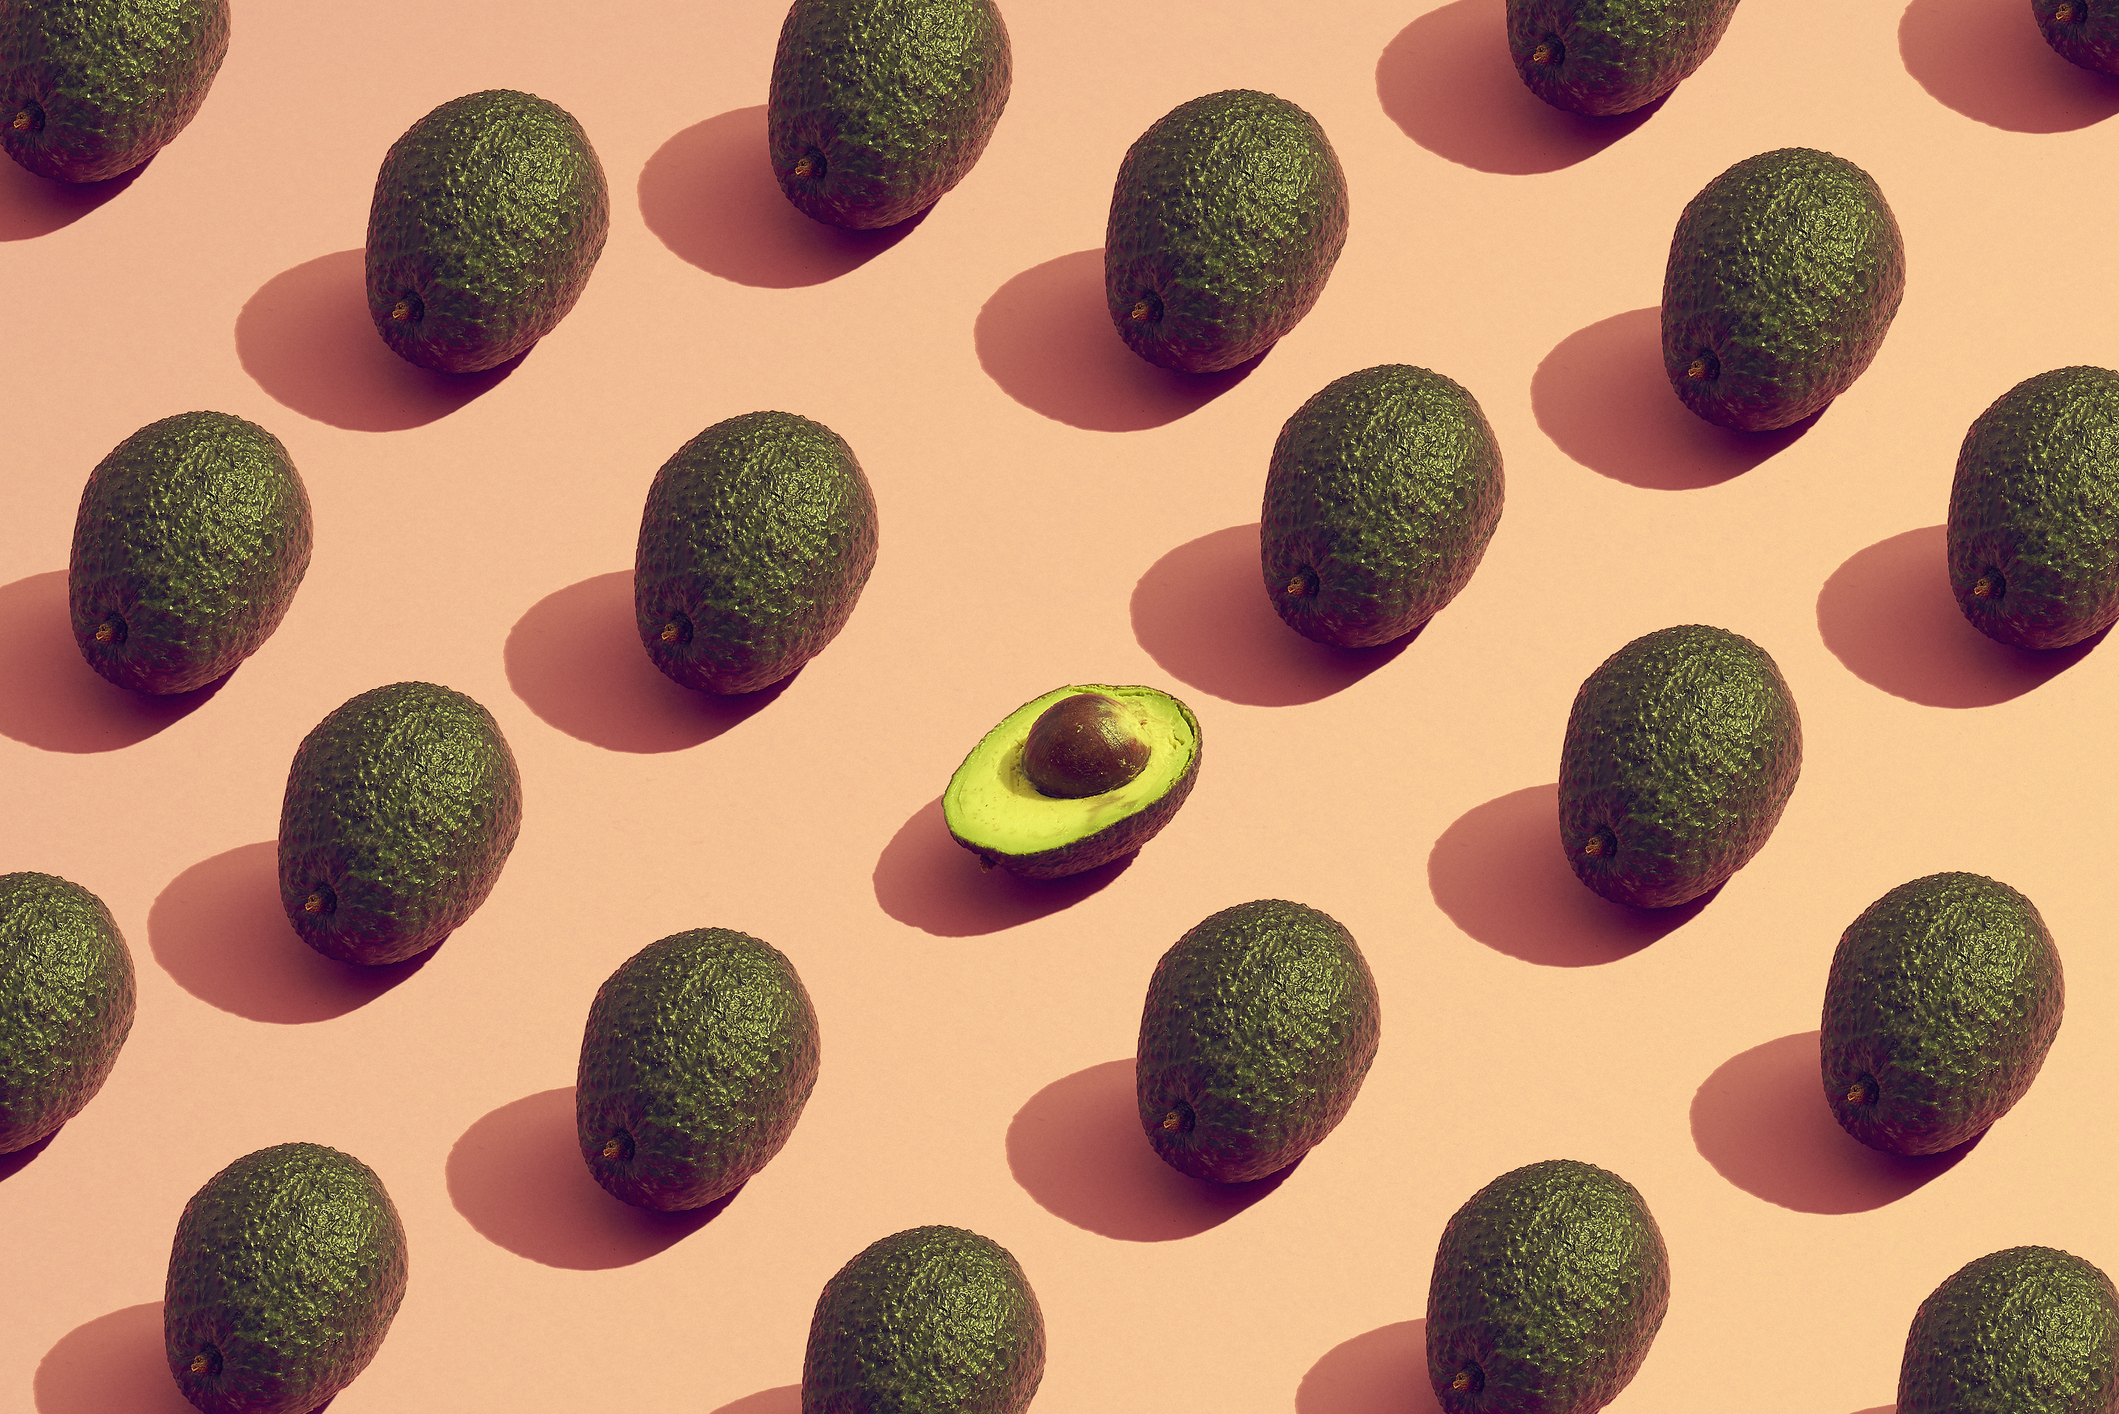 Th benefits of avocado shown in a pattern made from avocados.